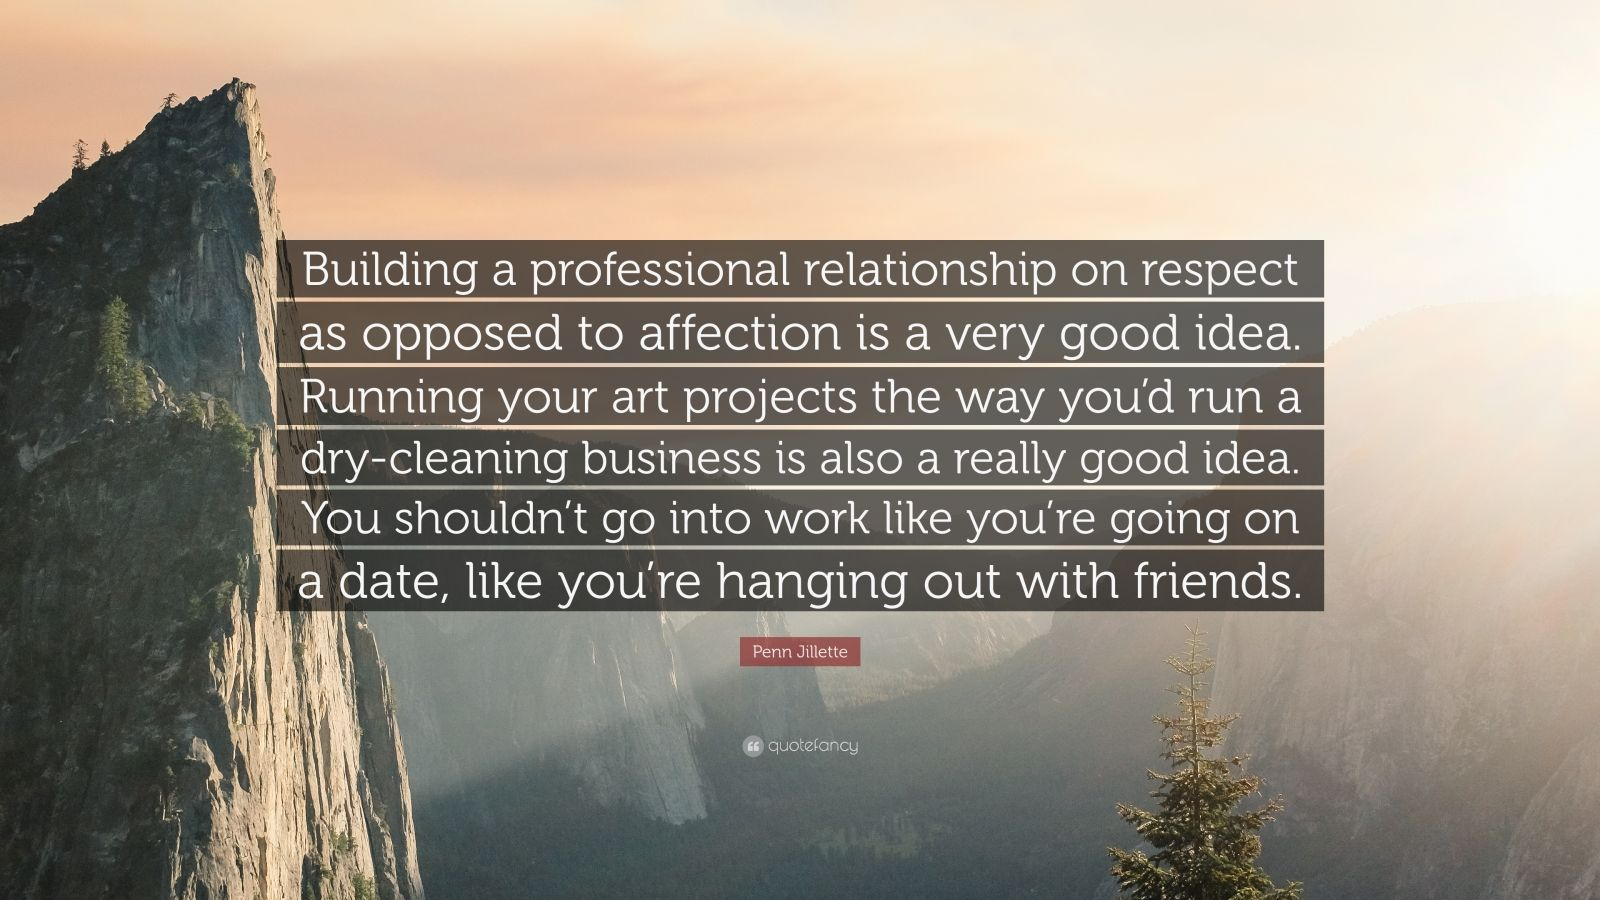 """Penn Jillette Quote: """"Building a professional relationship on respect as opposed to affection is a very good idea. Running your art projects the way you'd run a dry-cleaning business is also a really good idea. You shouldn't go into work like you're going on a date, like you're hanging out with friends."""""""